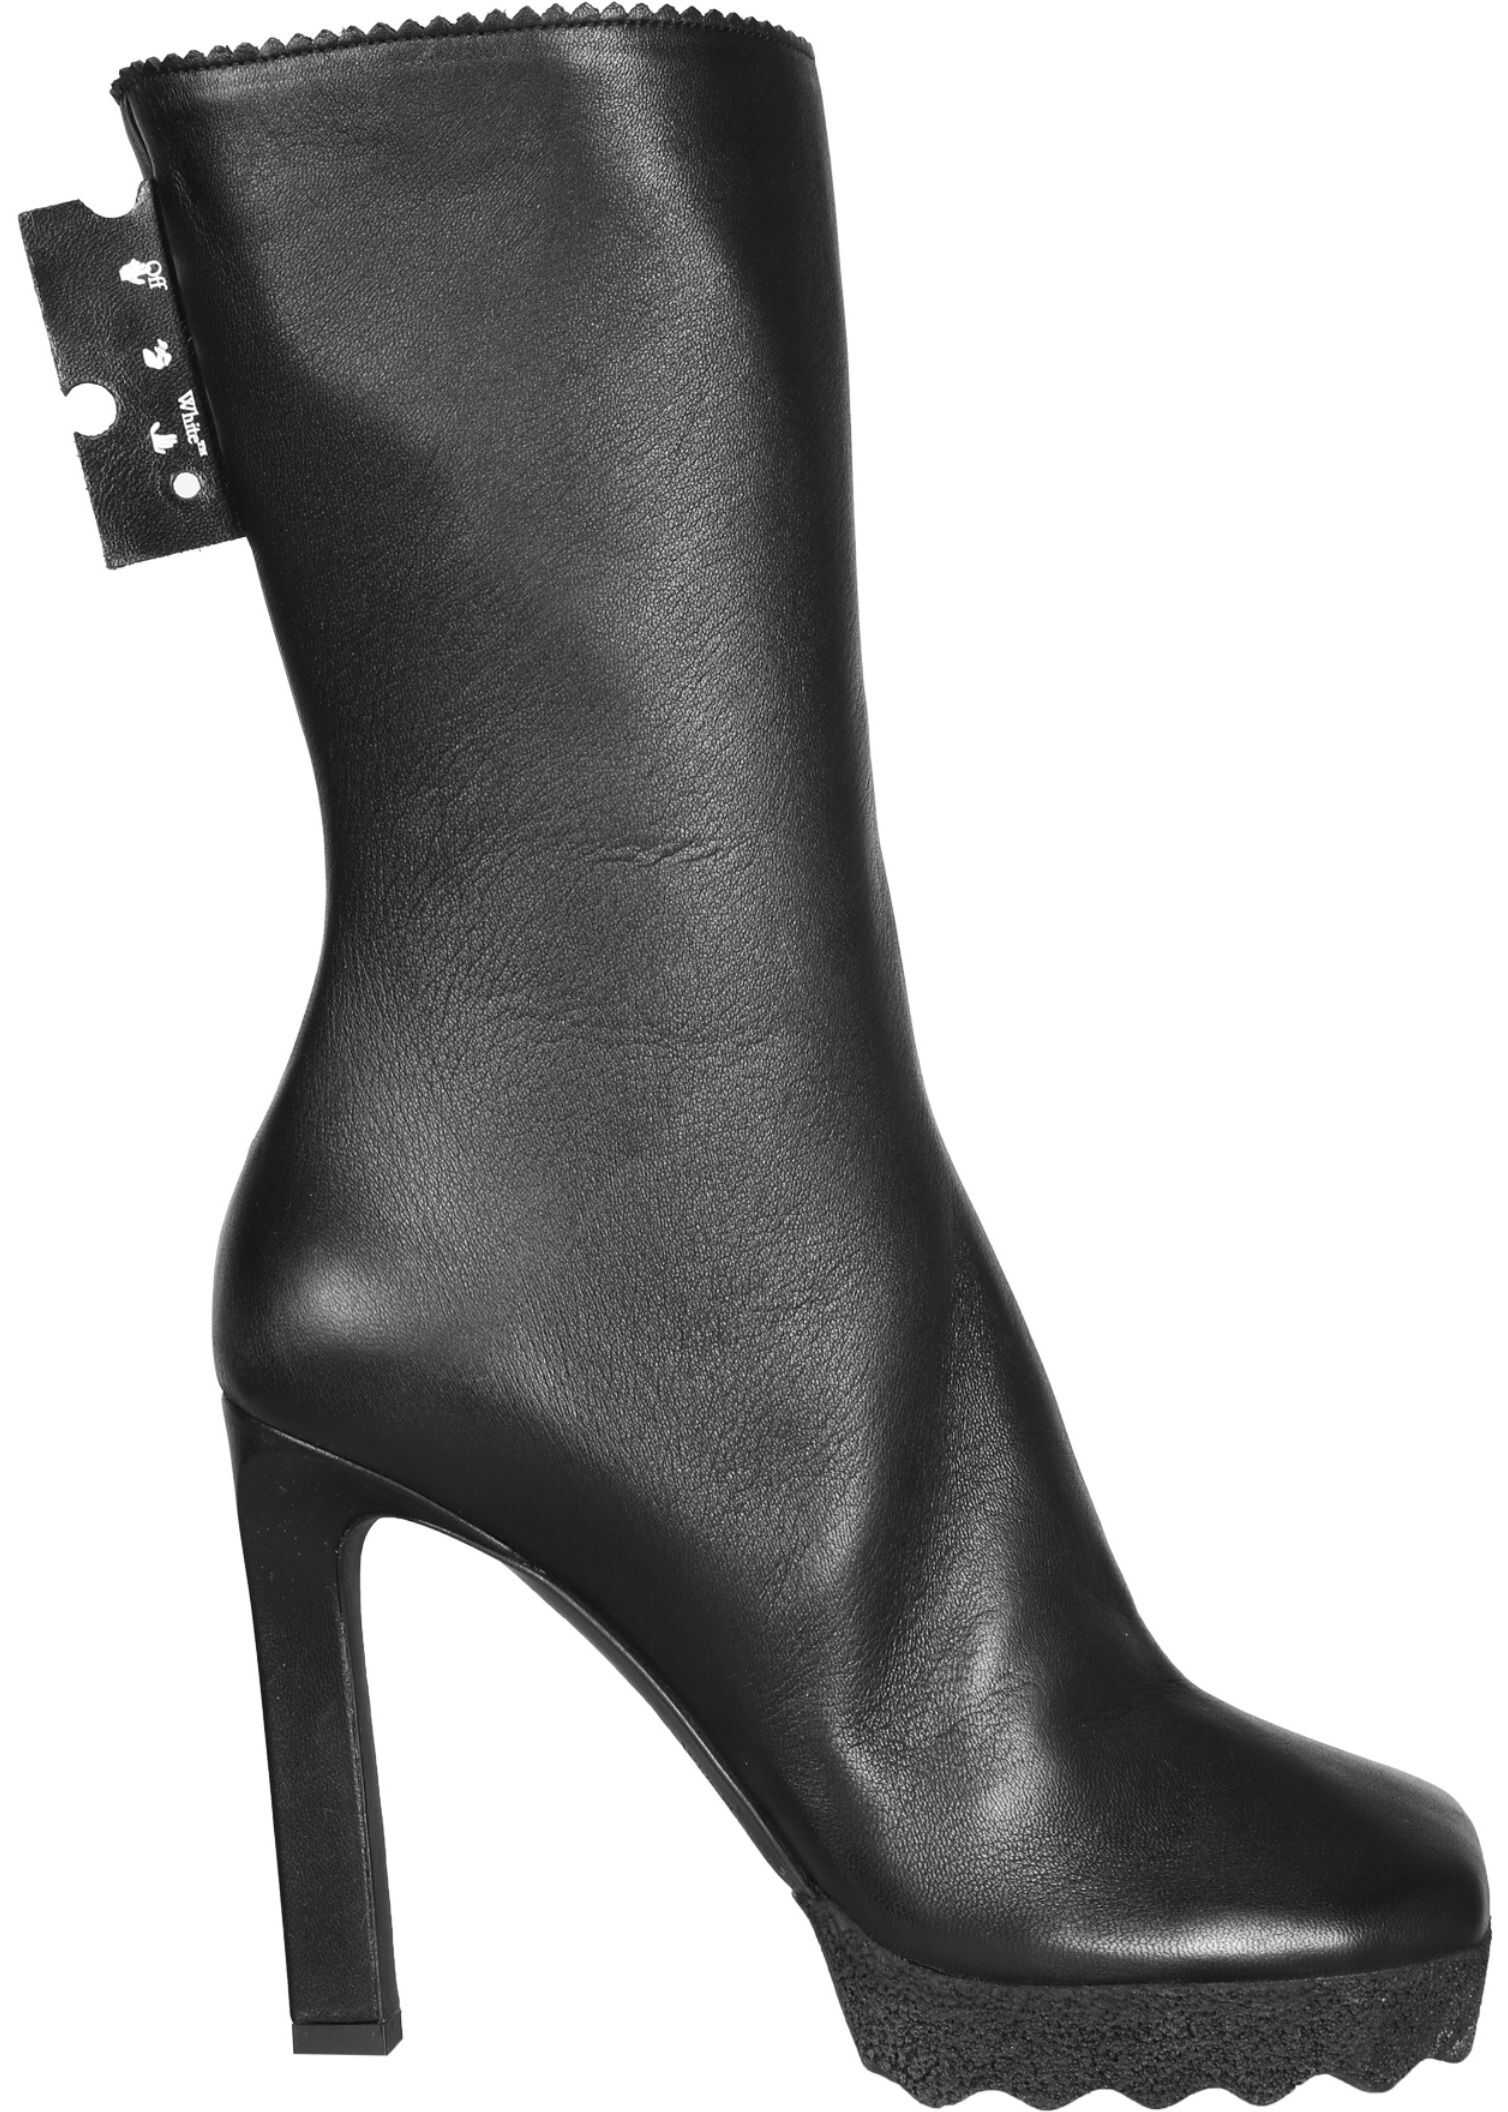 Off-White Boots With Heel OWID005_F20LEA0011000 BLACK imagine b-mall.ro